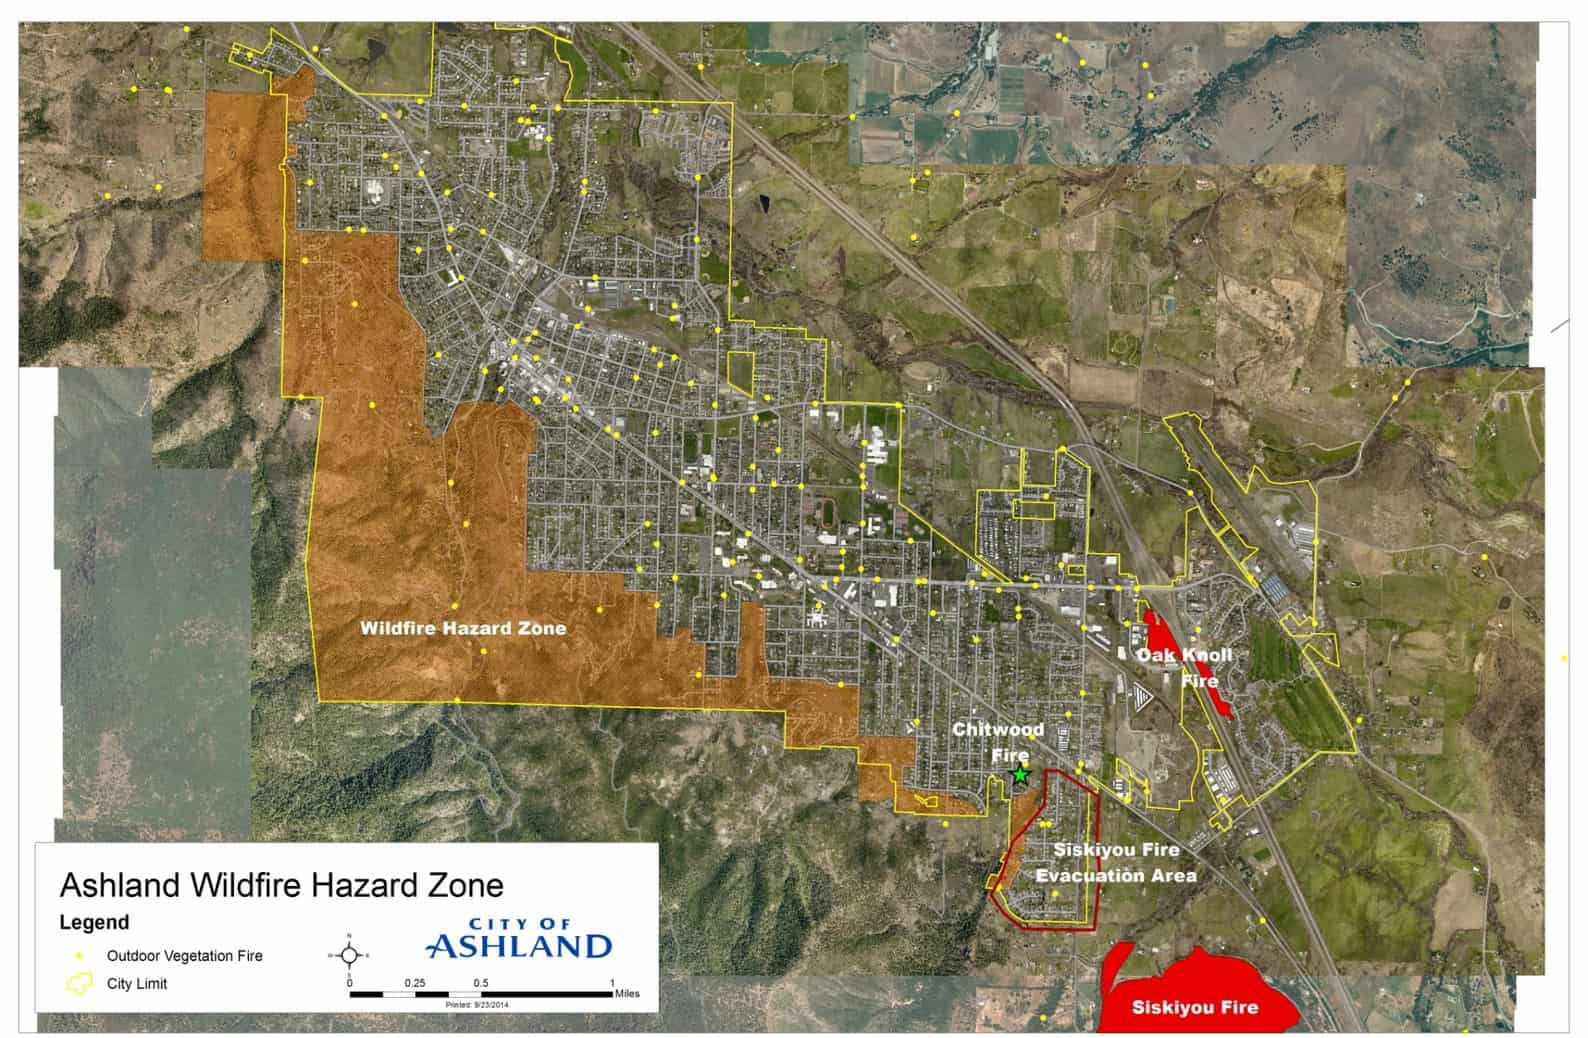 Map of Siskiyou Fire footprint, located southeast of the designated wildfire hazard area